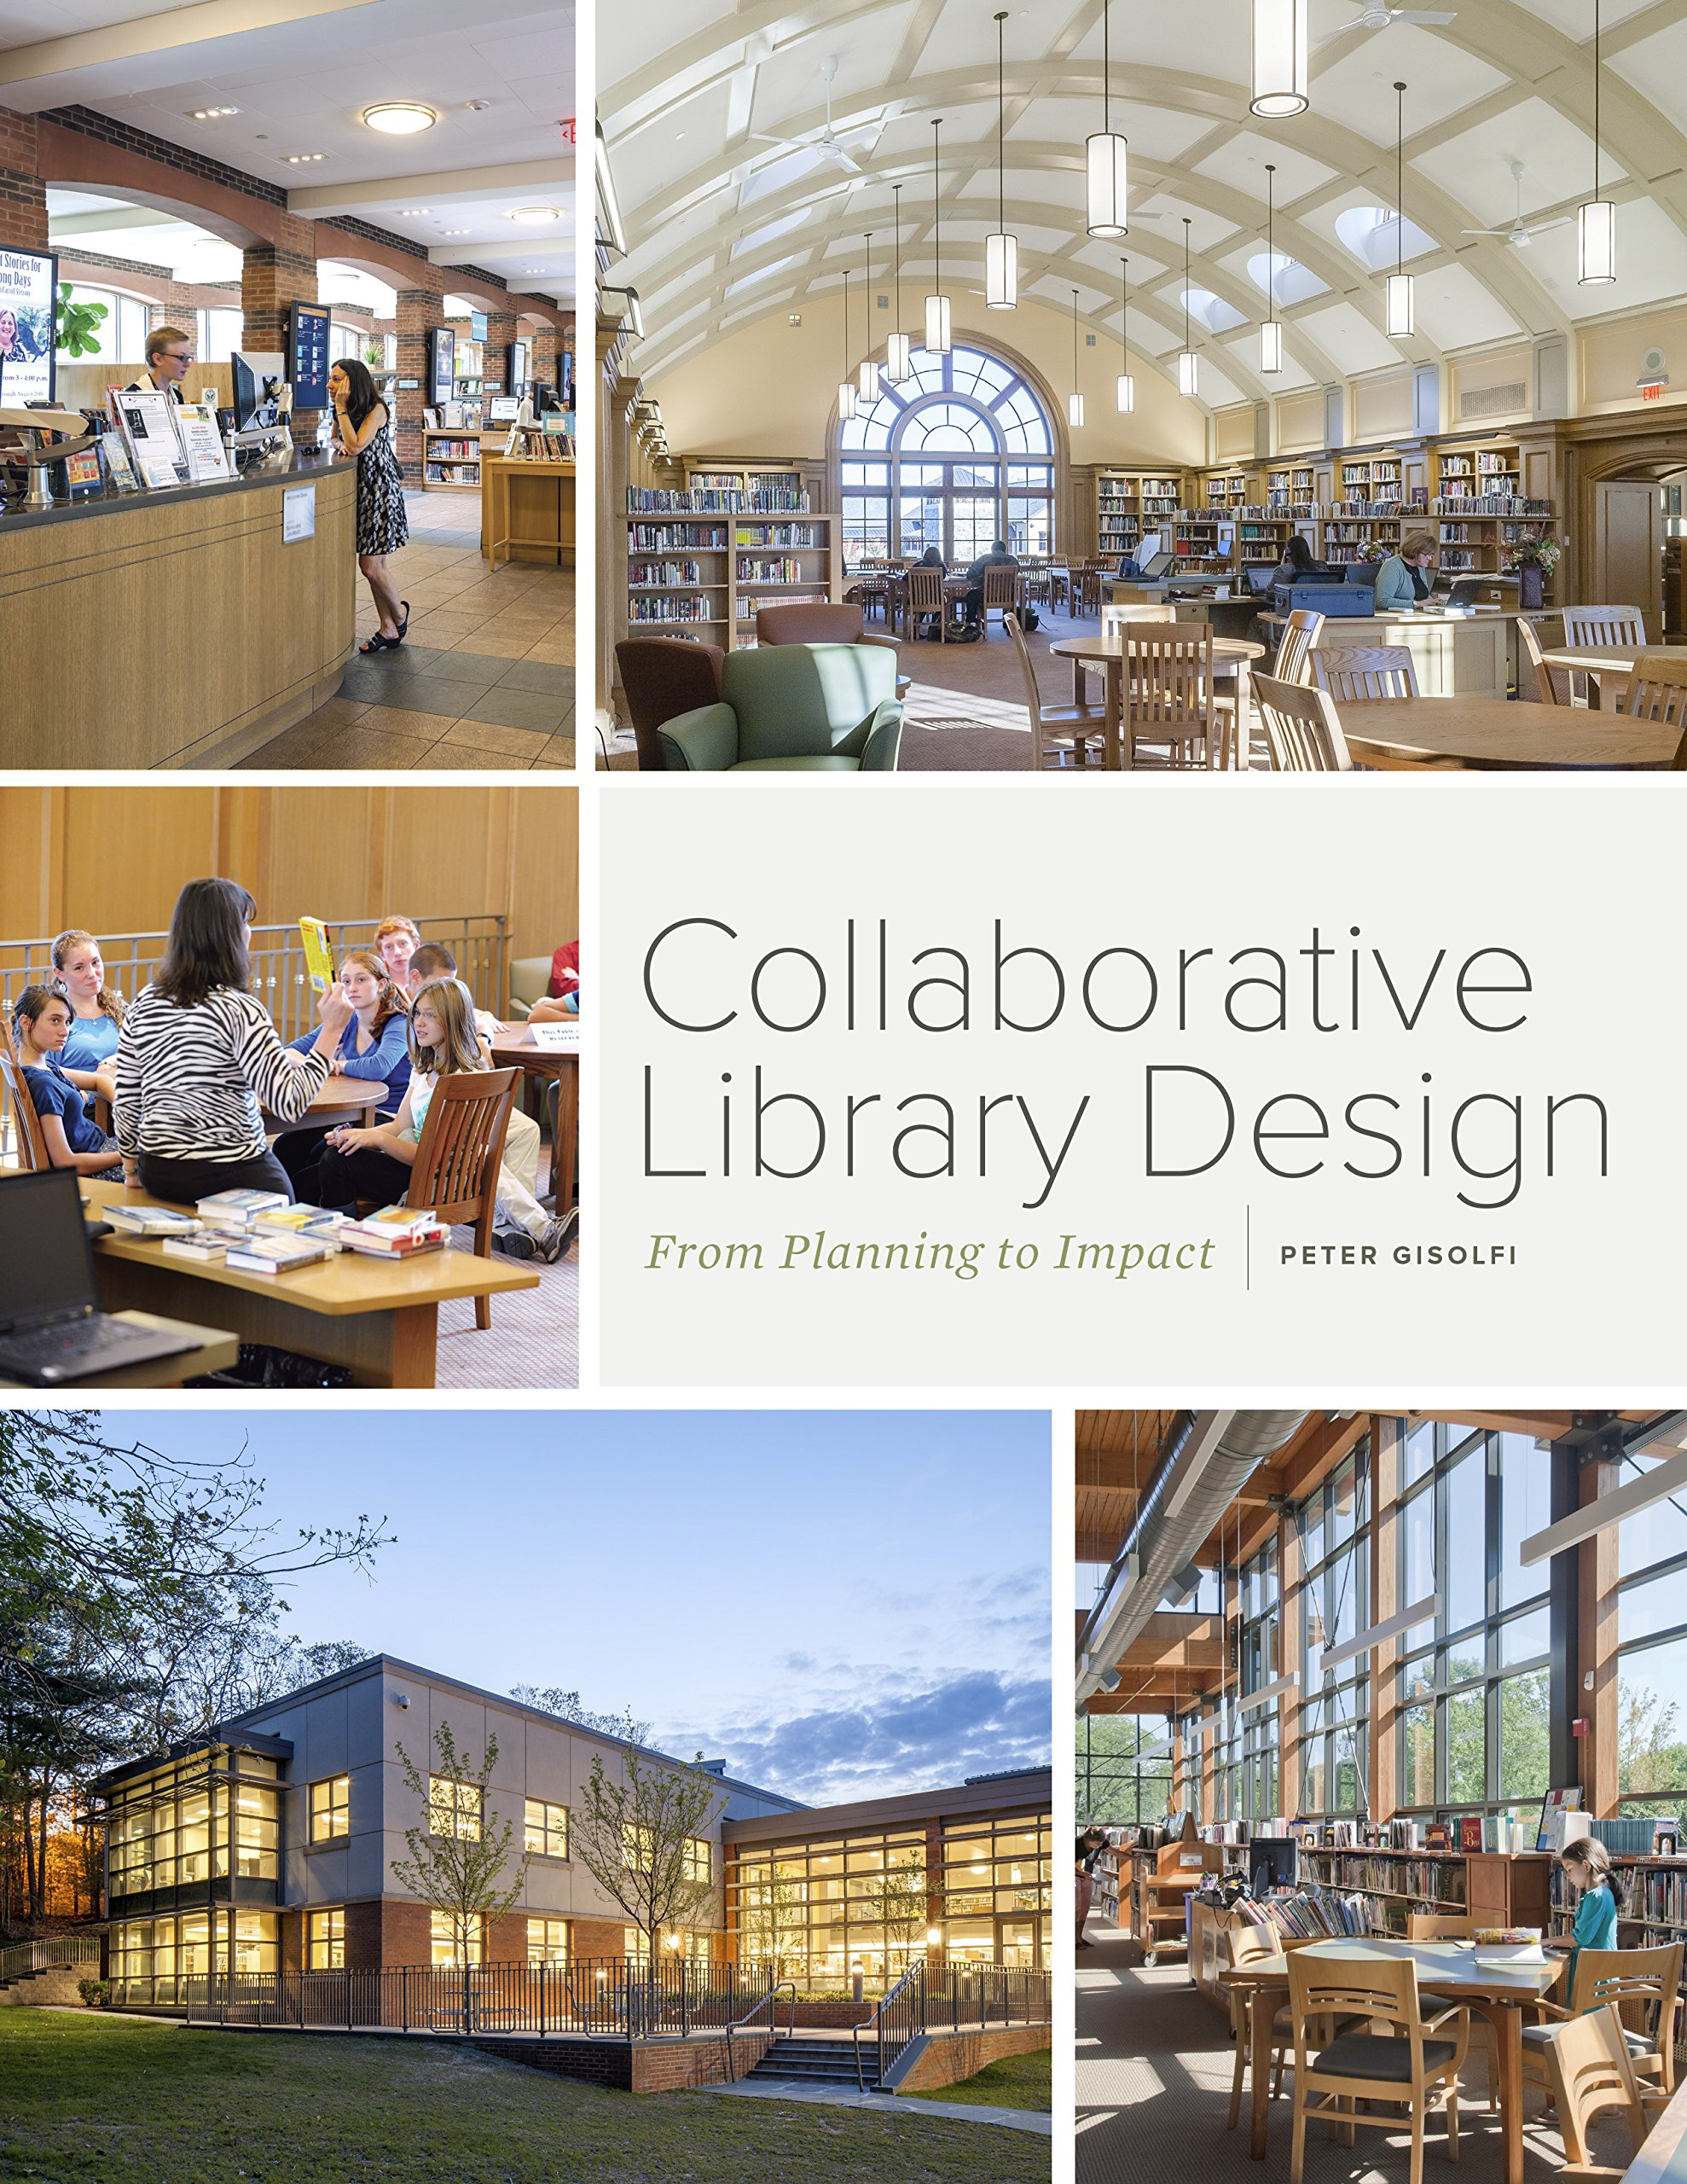 Collaborative Library Design: From Planning to Impact